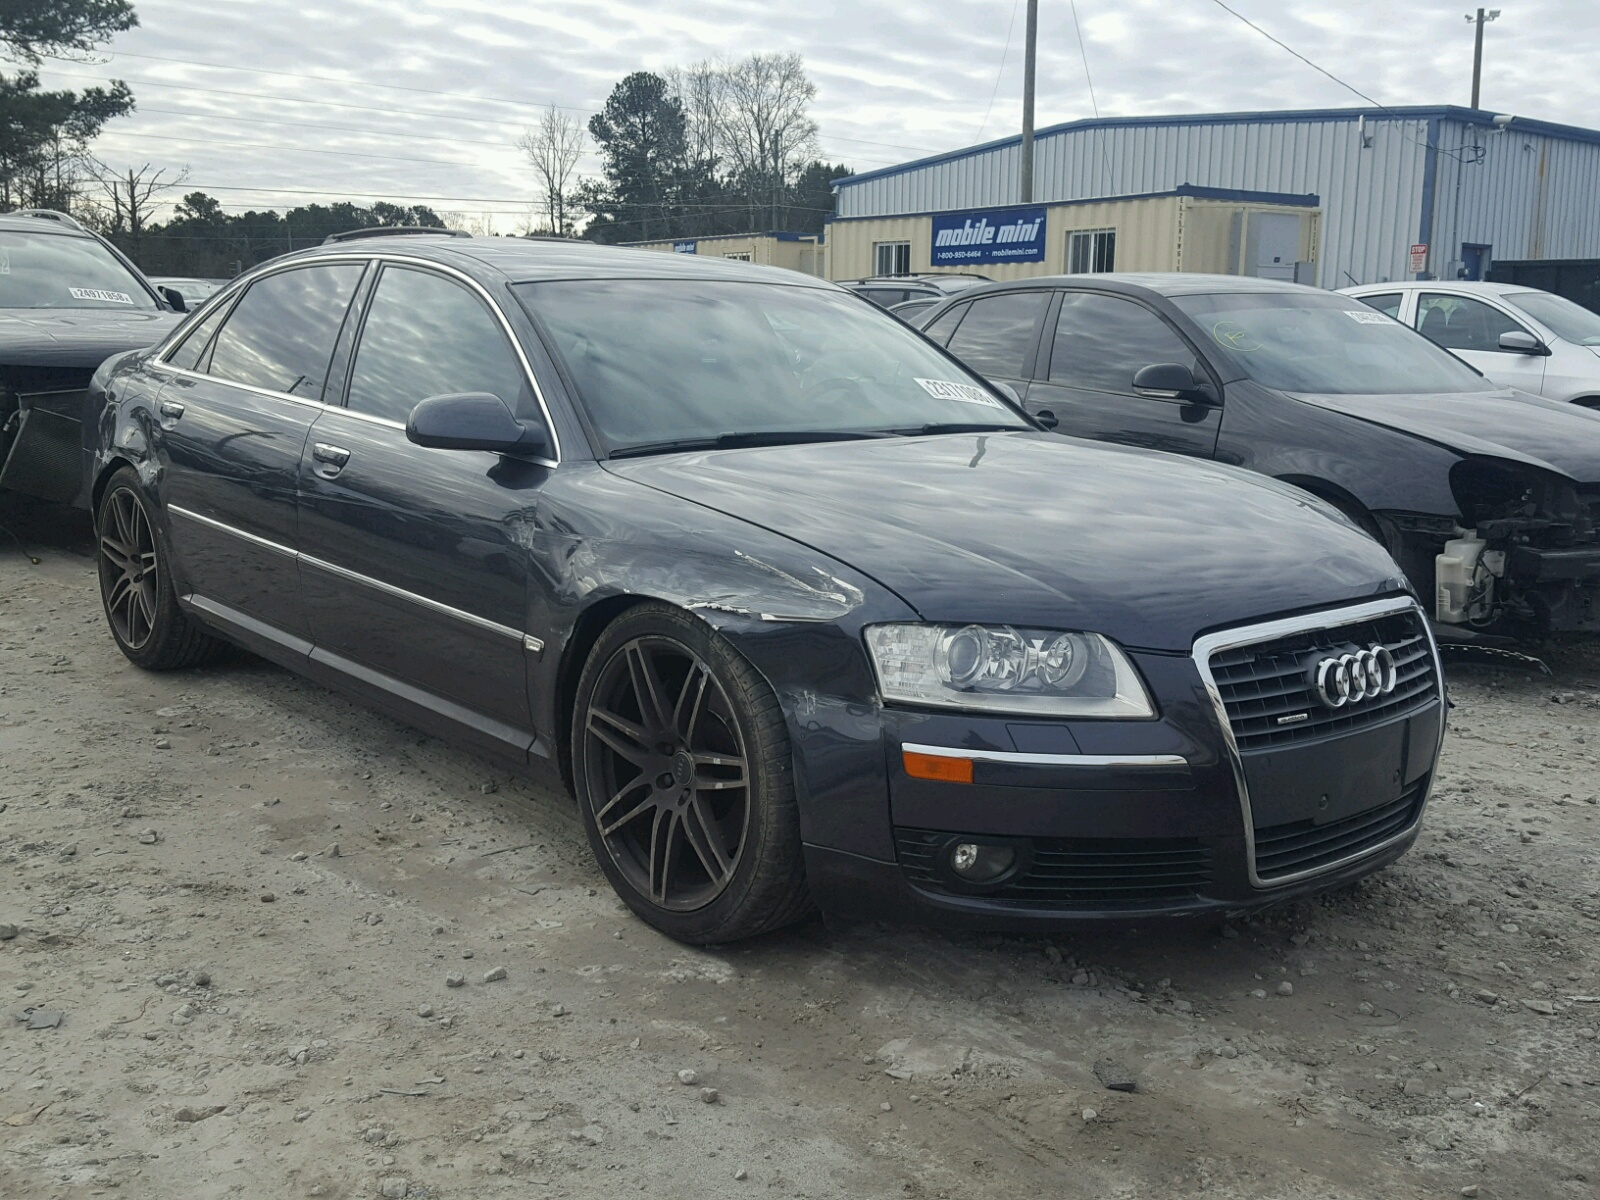 Salvaged AUDI For Auction AutoBidMaster - Audi car auctions